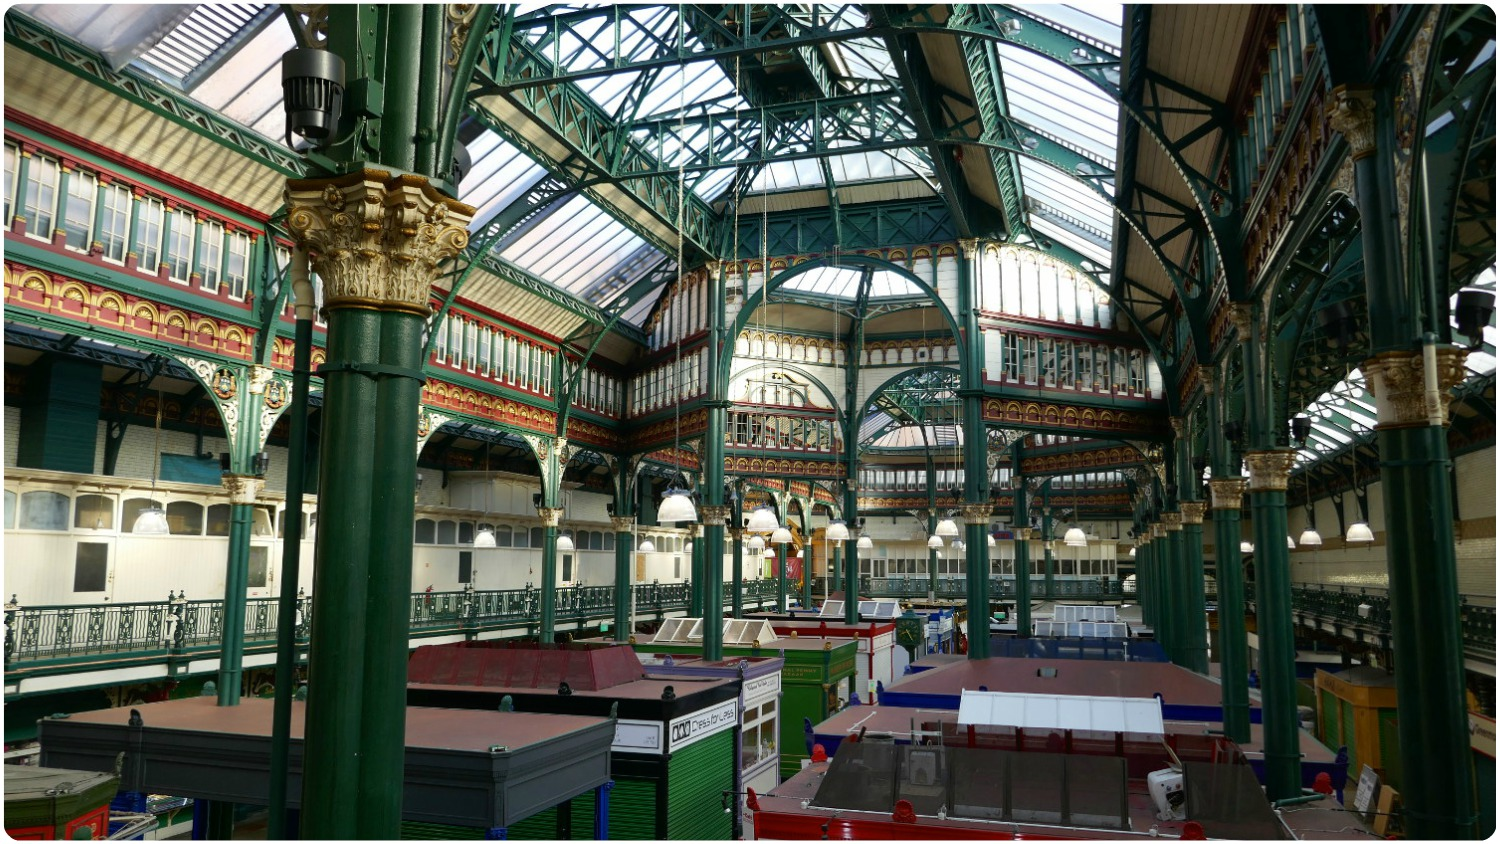 The Victorian design of Kirk Gate Market is stunning. We visited early, just as the shops were setting up for the day.In the calm of the early morning it wasn't hard to use our imaginations and step back in time!